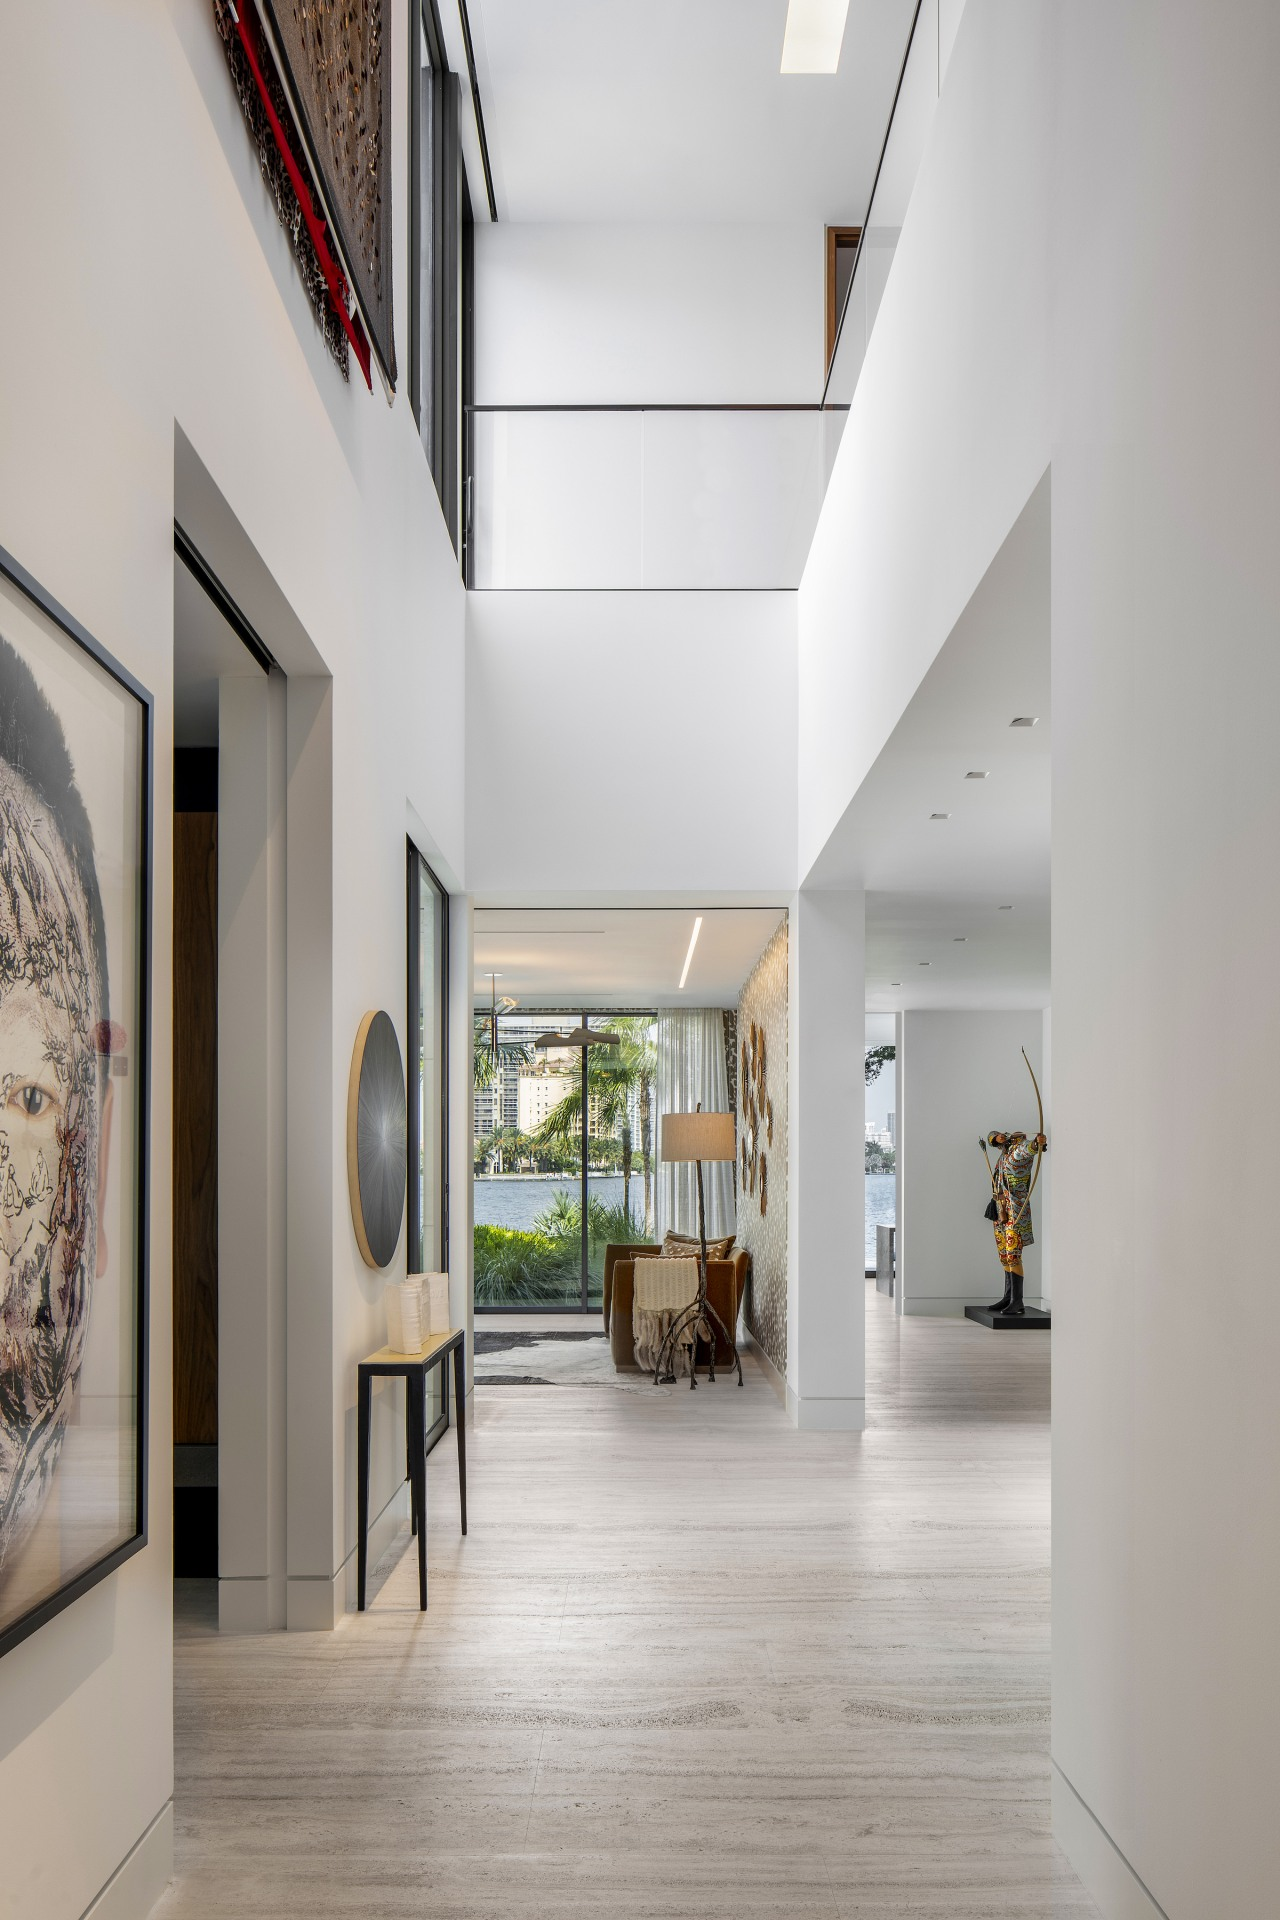 The interior architecture has been kept unfussy and